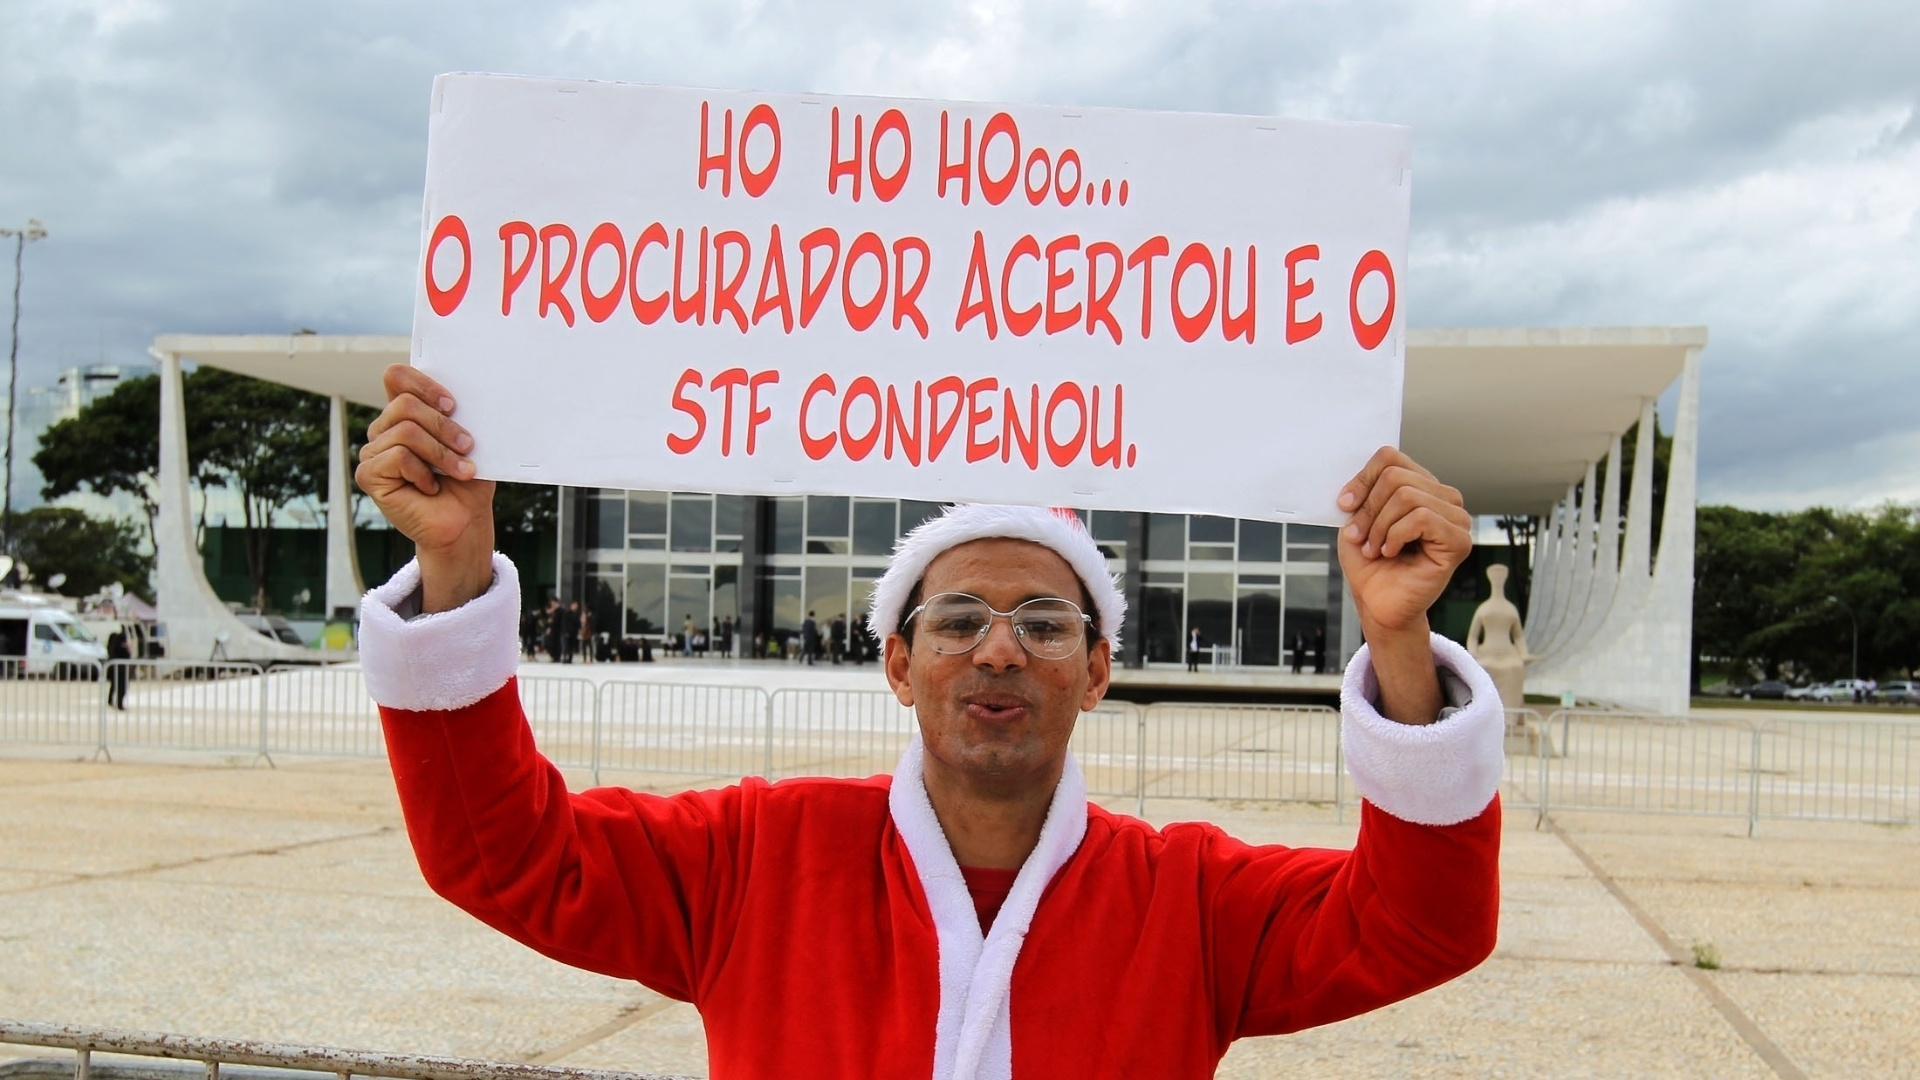 14.nov.2012 - Manifestante vestido de Papai Noel carrega placa do lado de fora do Supremo Tribunal Federal, durante julgamento do mensalão.